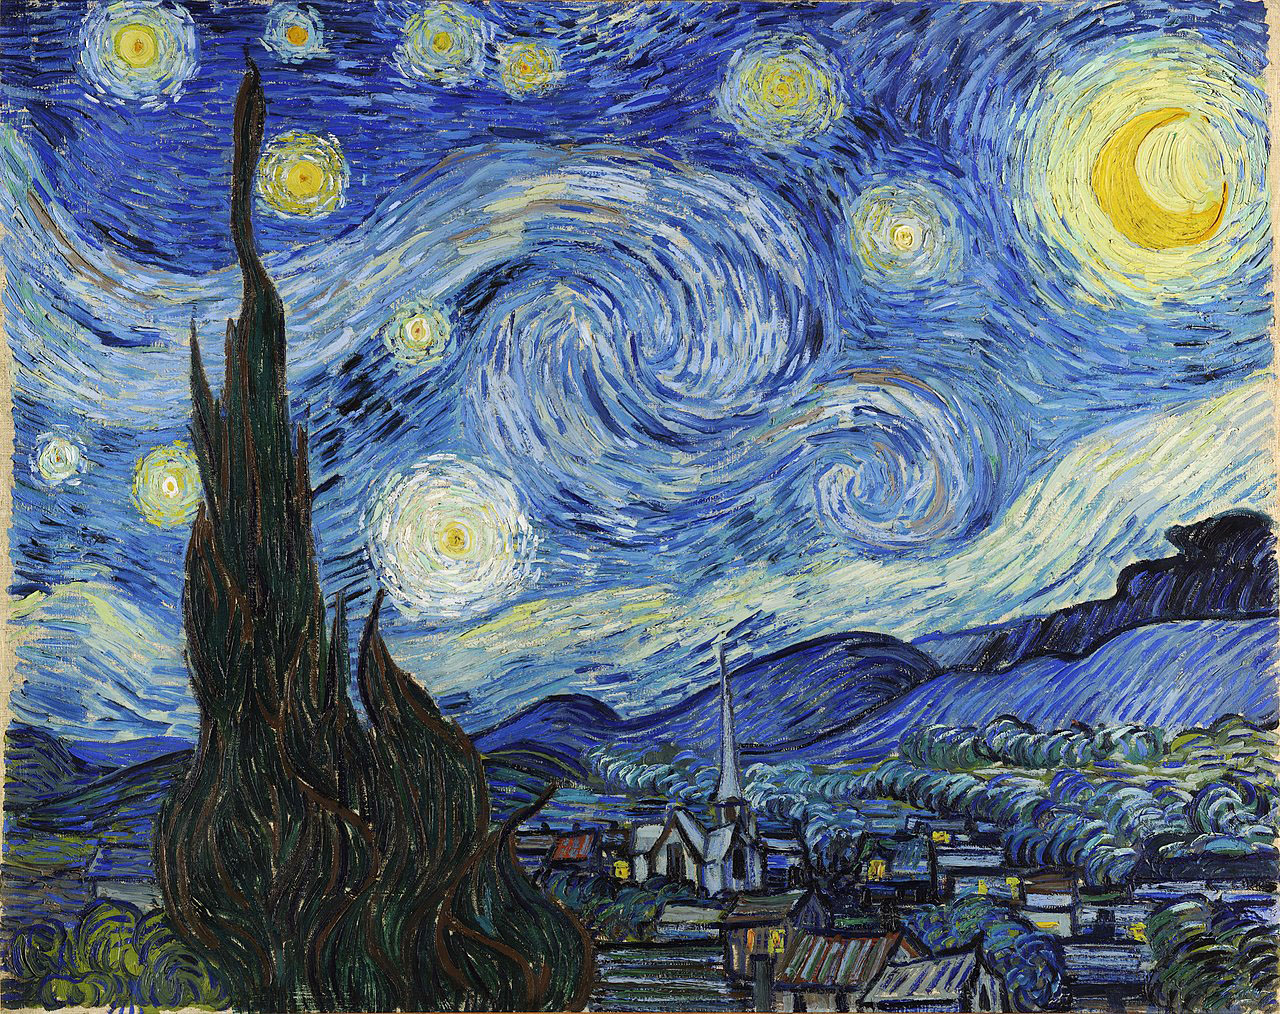 https://media.thisisgallery.com/wp-content/uploads/2018/11/gogh_02.jpg